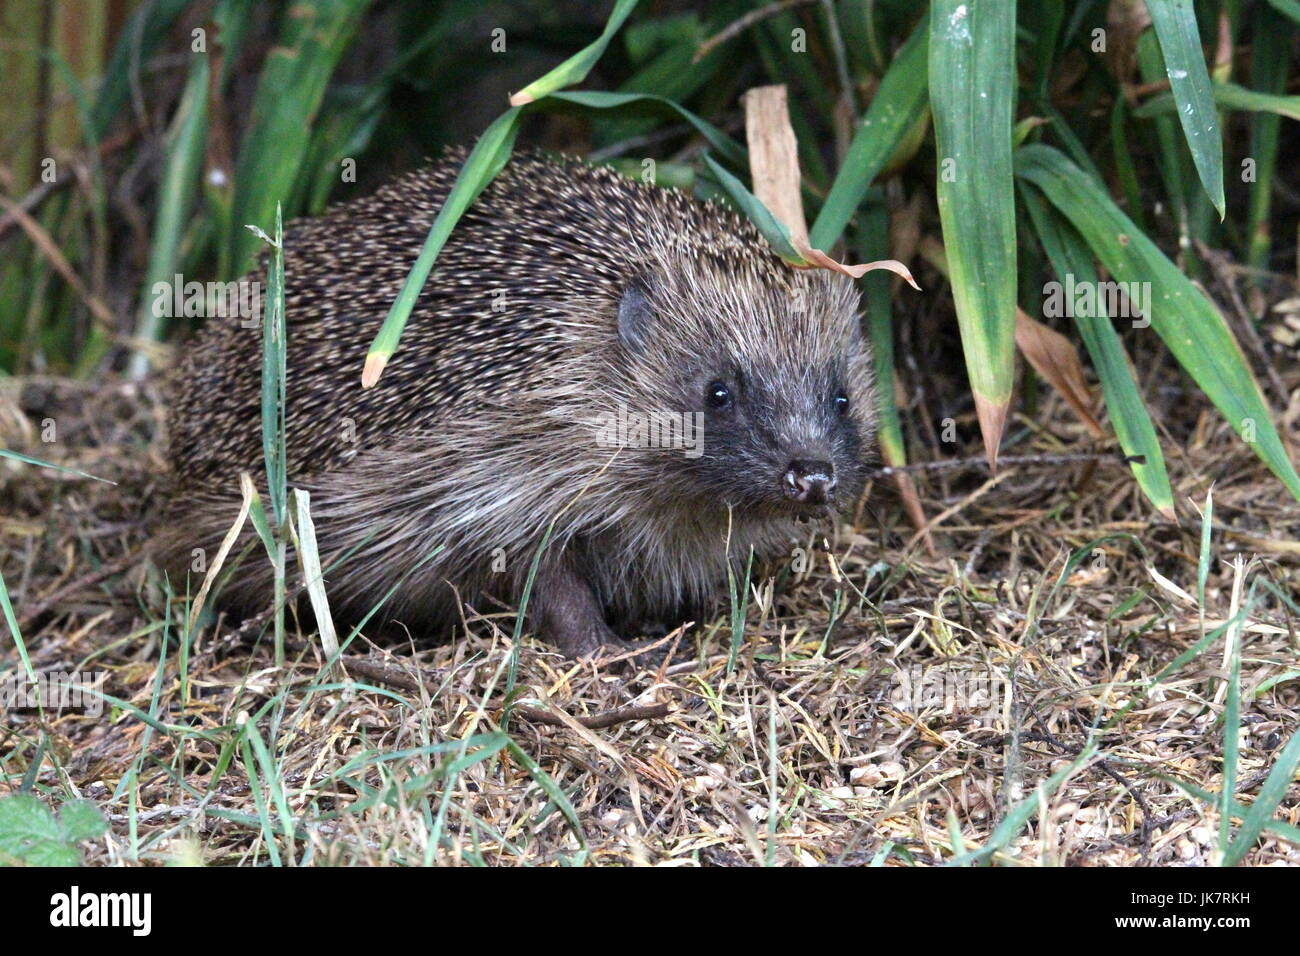 A close up photograph of a European Hedgehog in an urban garden, with long grass behind and seed on the ground - Stock Image